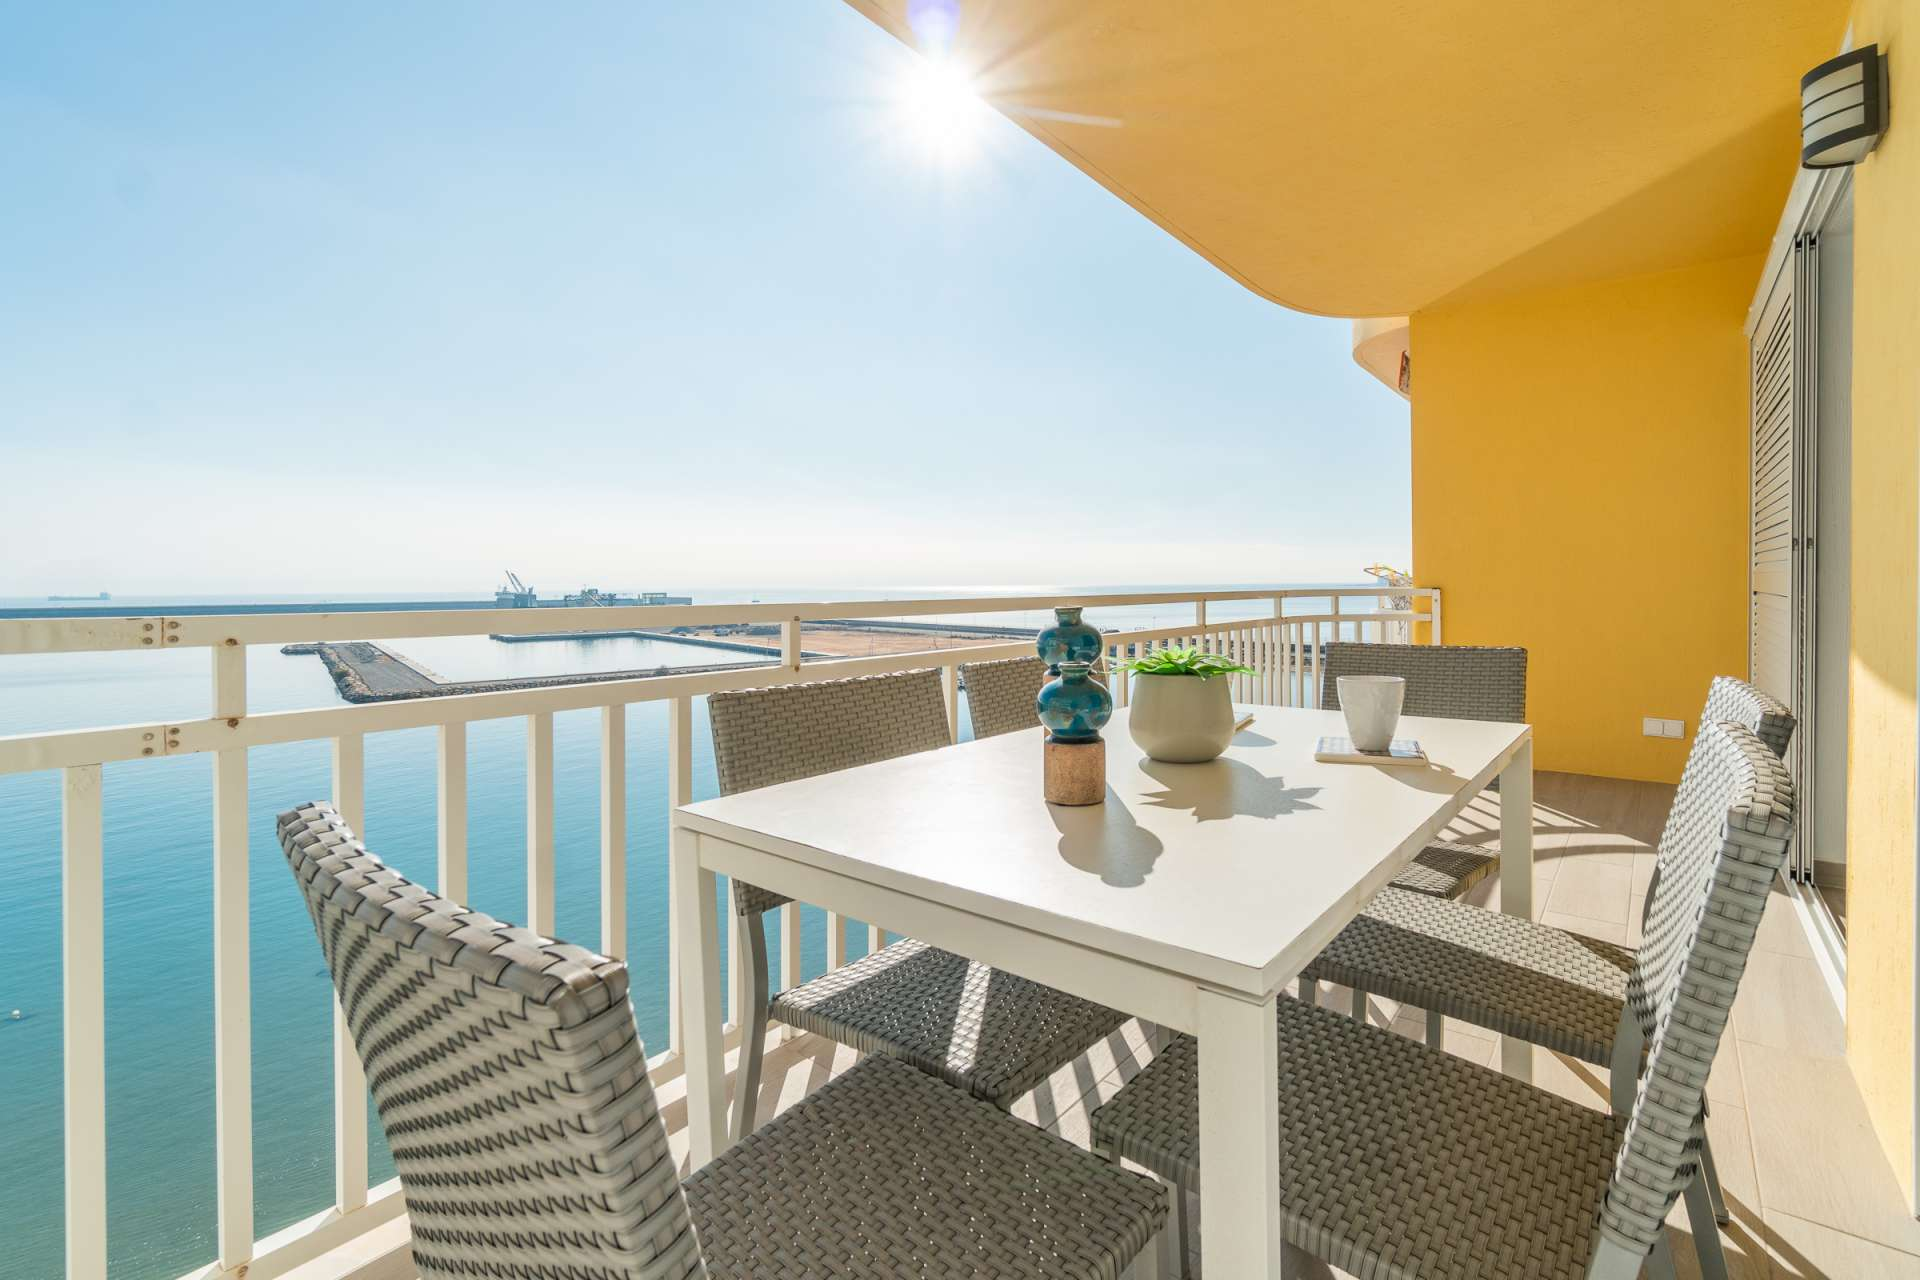 Frontline renovated apartment for sale with unobstructed sea view at the beach in Torrevieja.